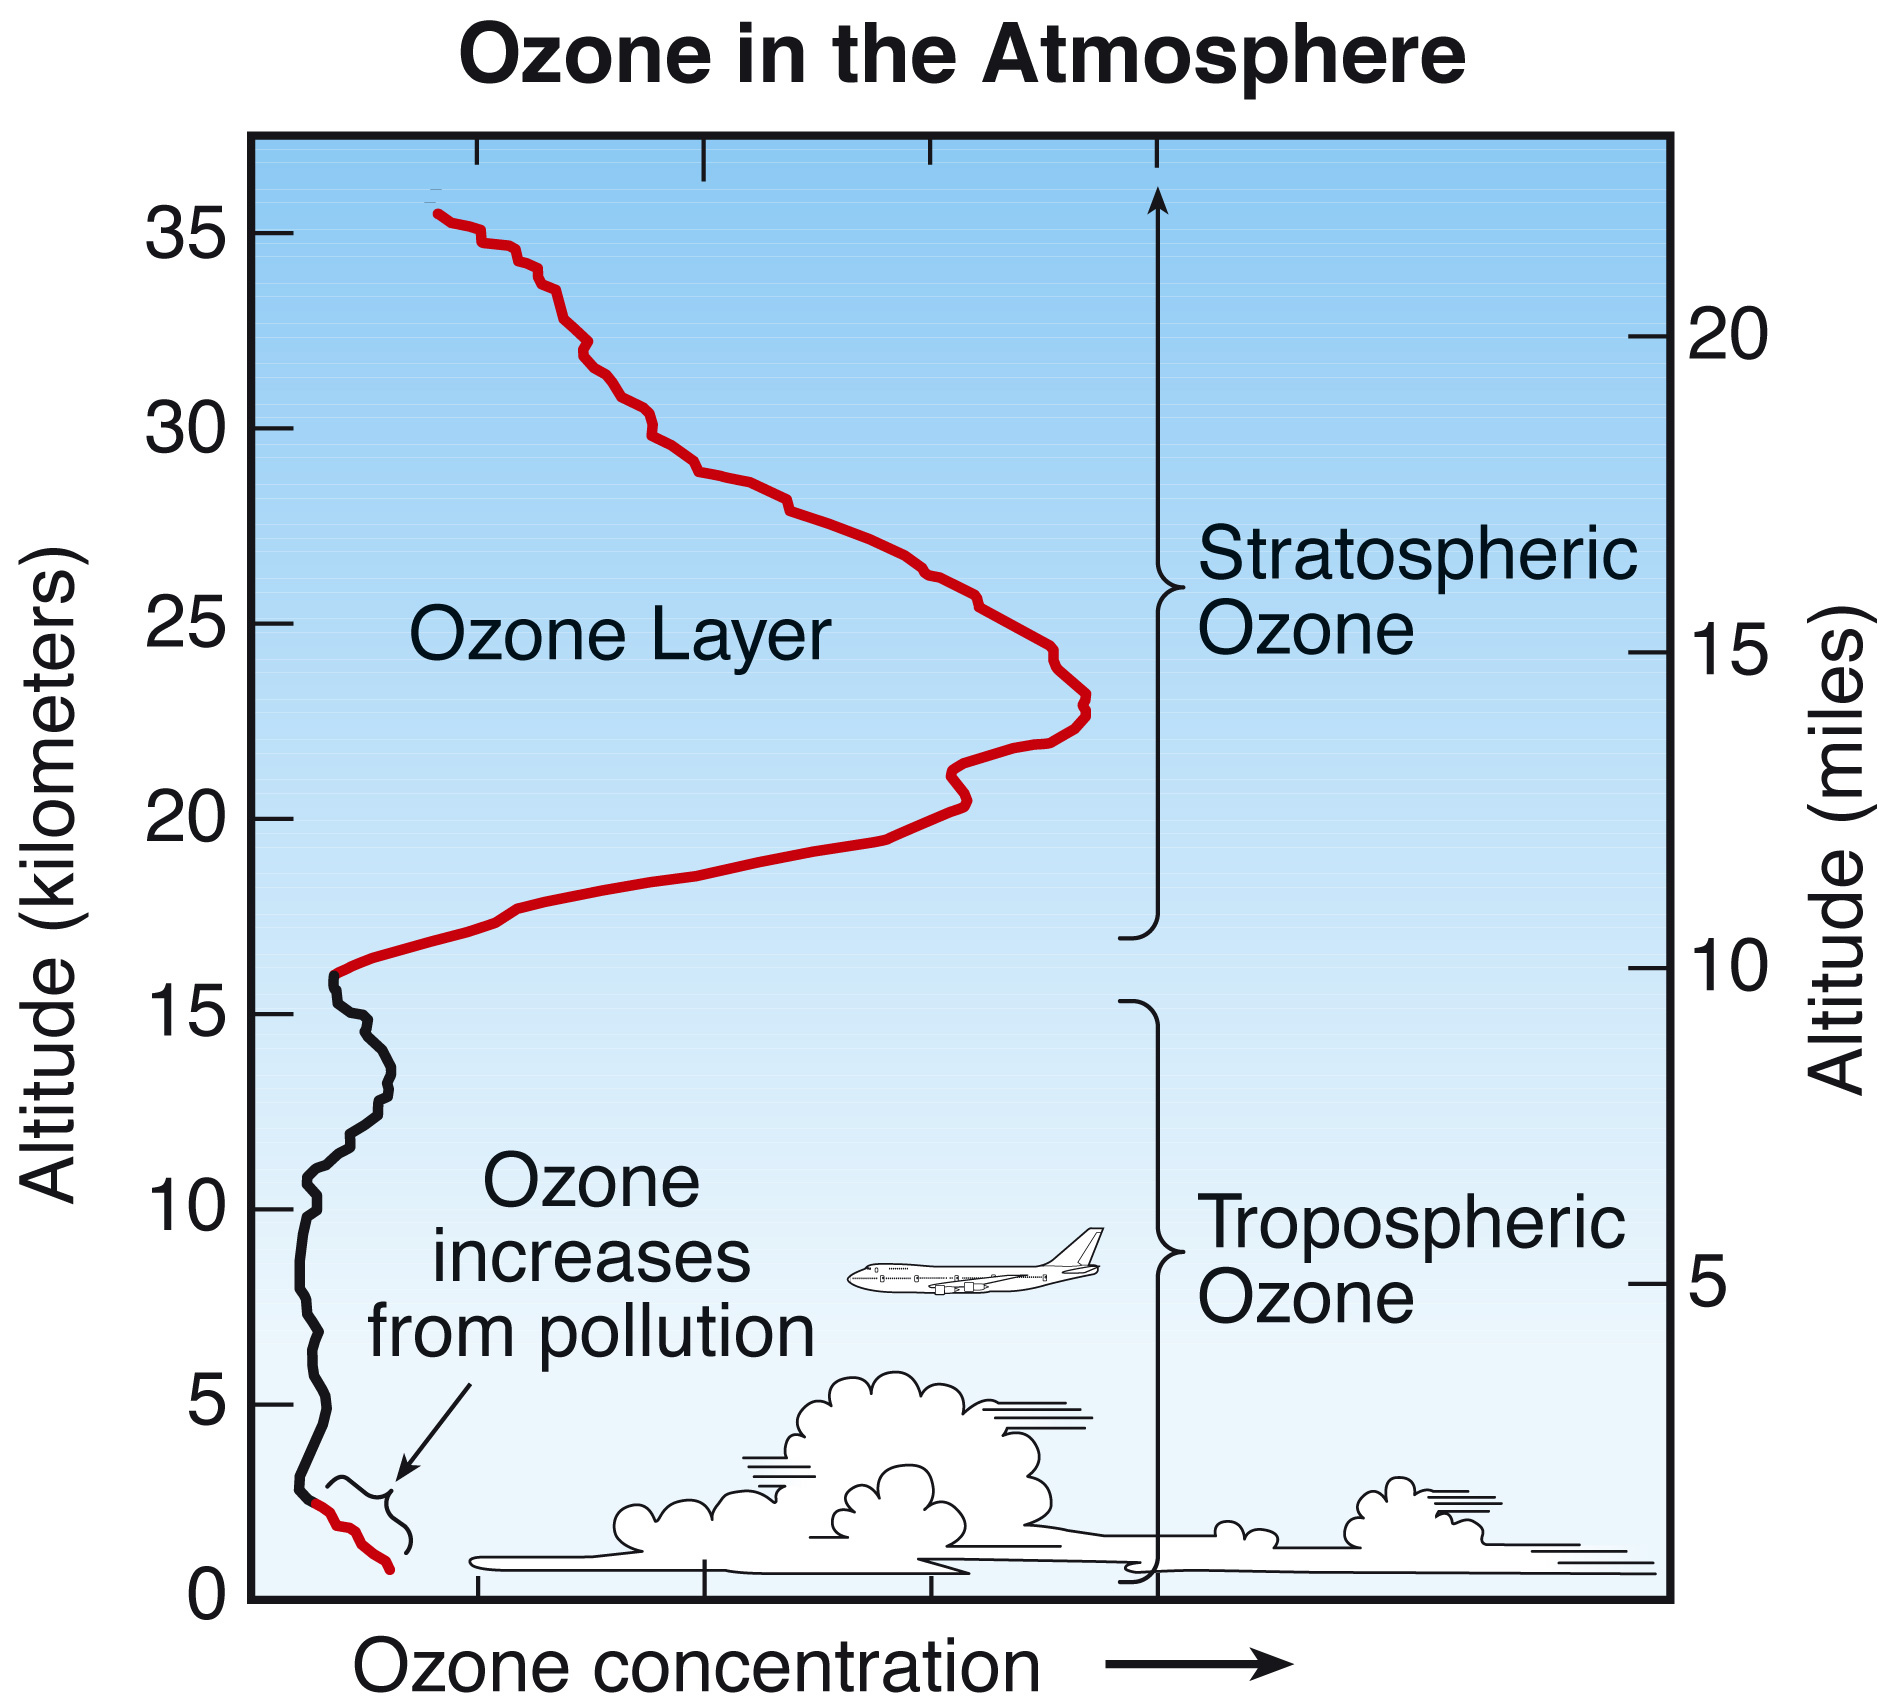 an analysis of a hole in the theory about the ozone layer A hole in the earth's ozone layer that forms over antarctica each september due to warm air was the smallest this year since 1988, scientists from nasa and the national oceanic and atmospheric administration announced on friday according to nasa, the ozone hole reached its peak extent on september 11.